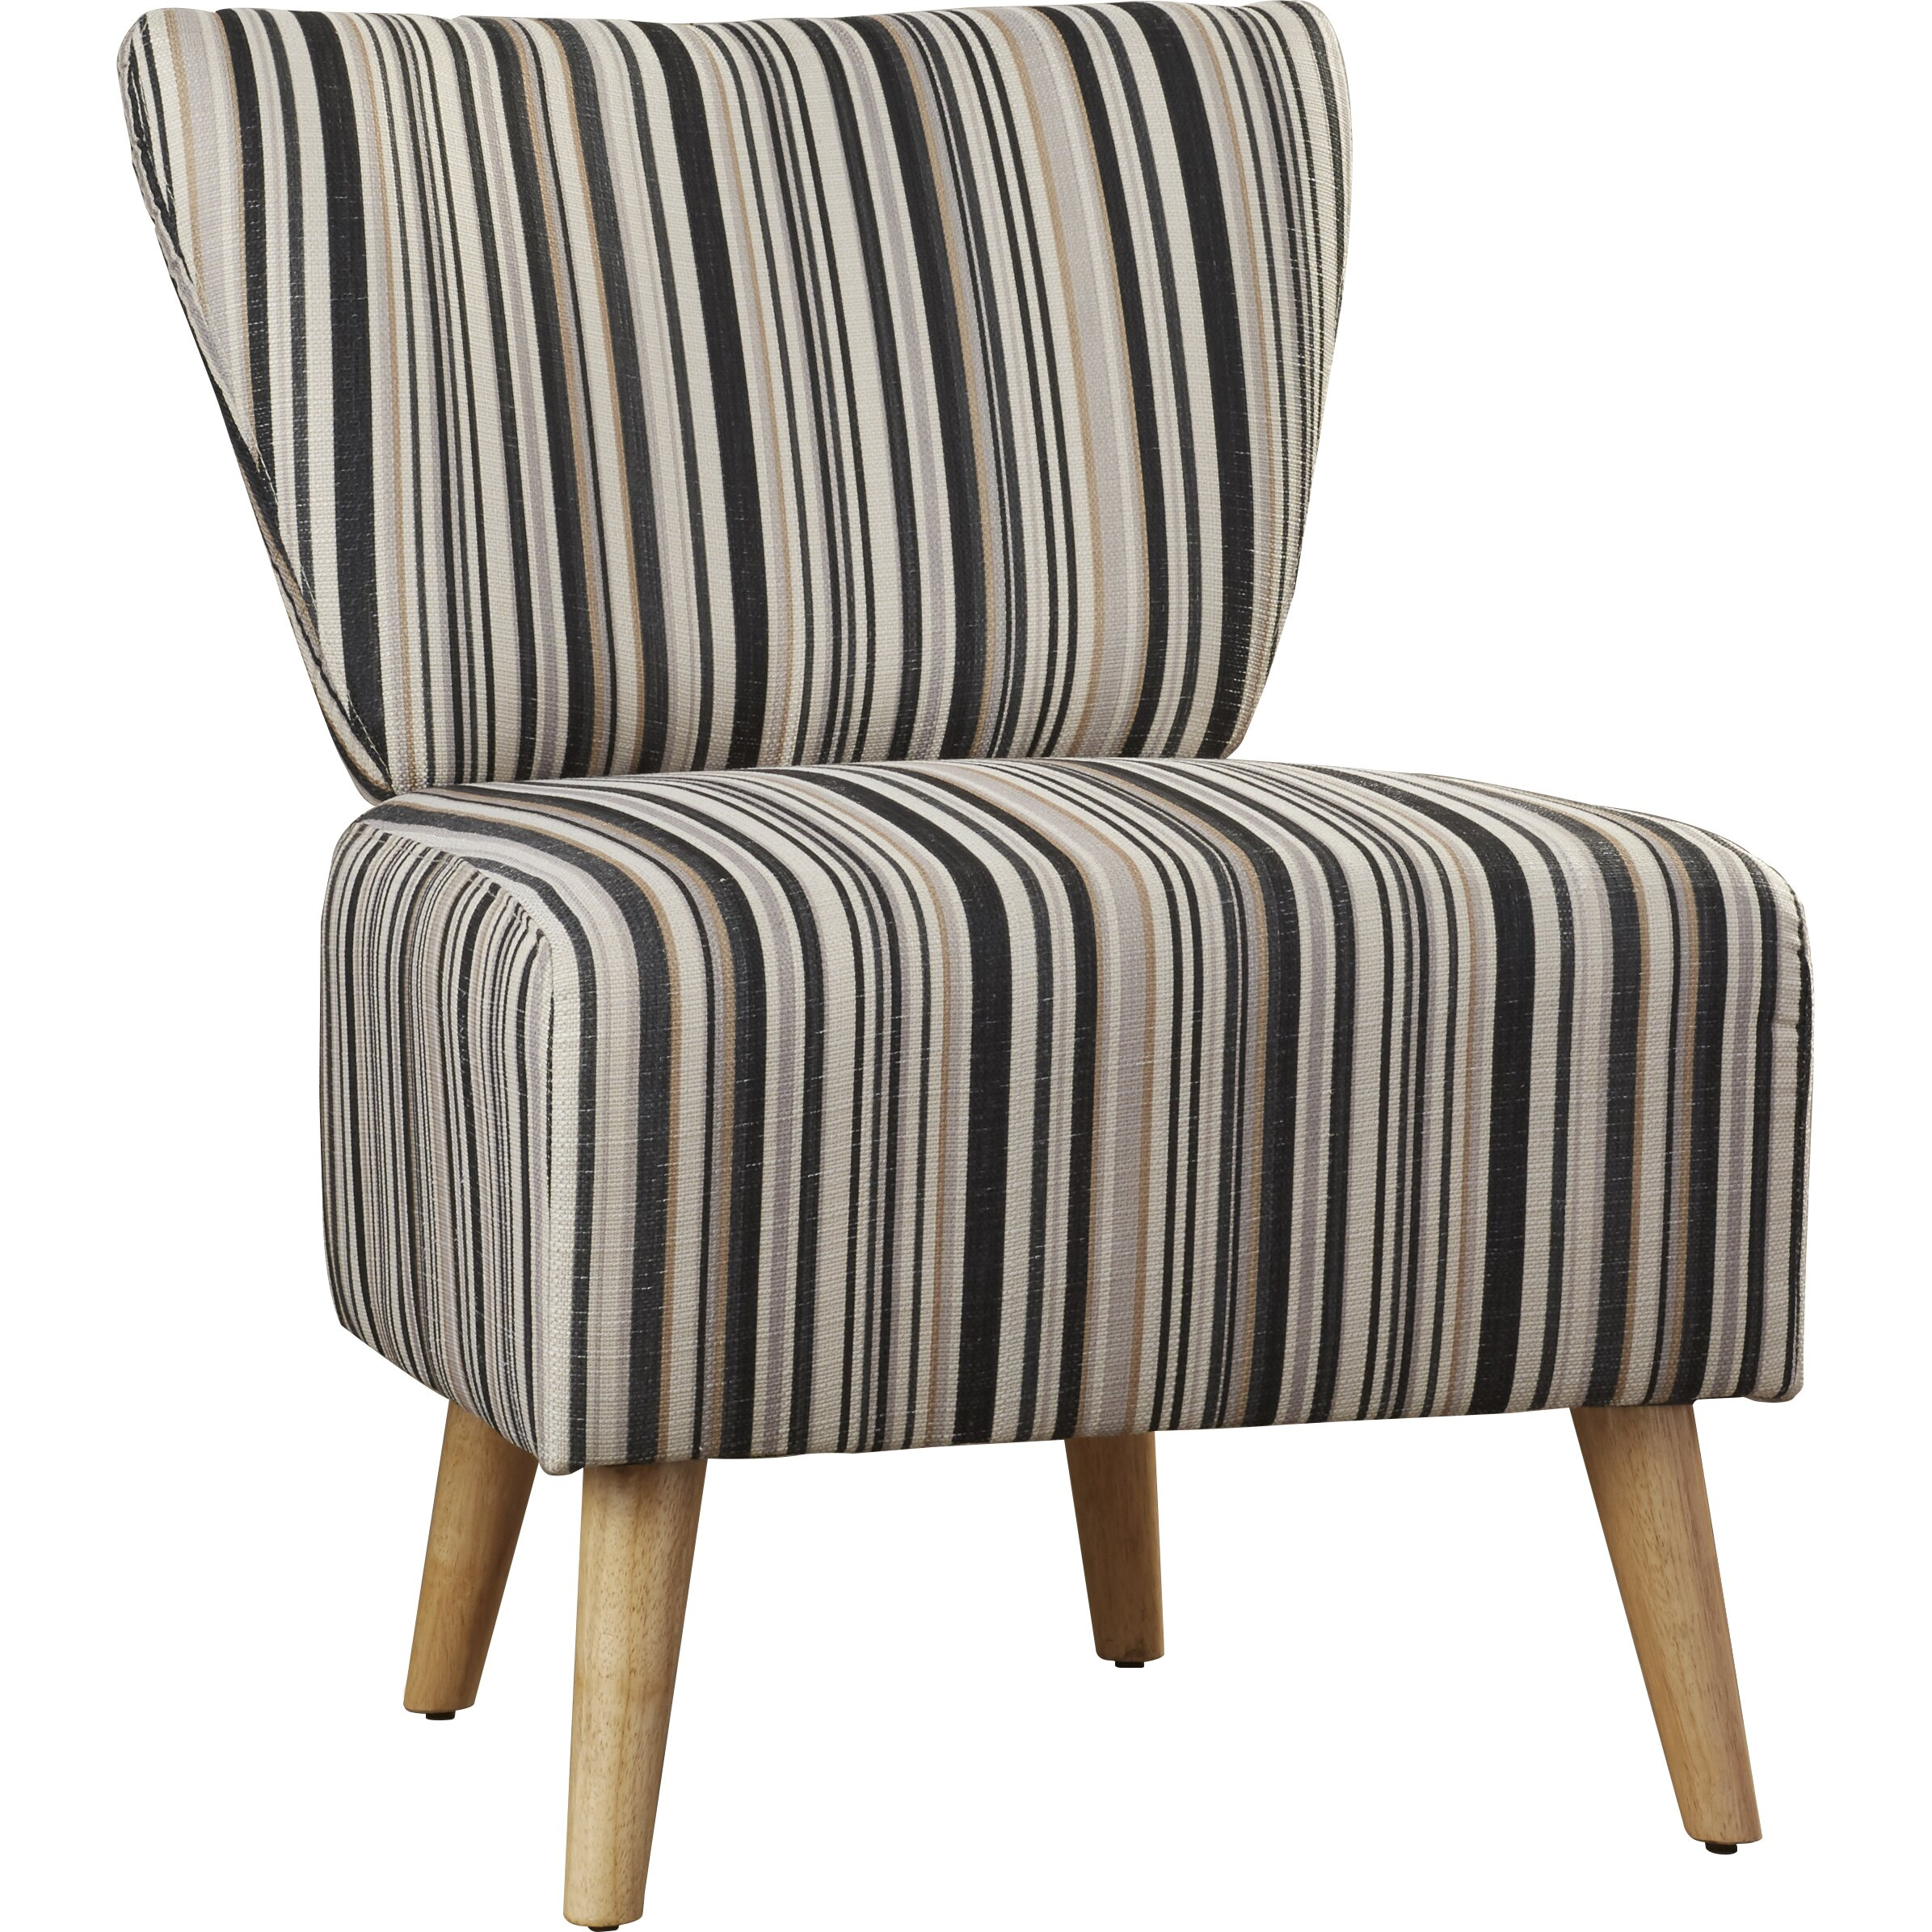 ... Patio Furniture Kona Hawaii · Langley Street Honolulu Stripe Print  Slipper Chair ...